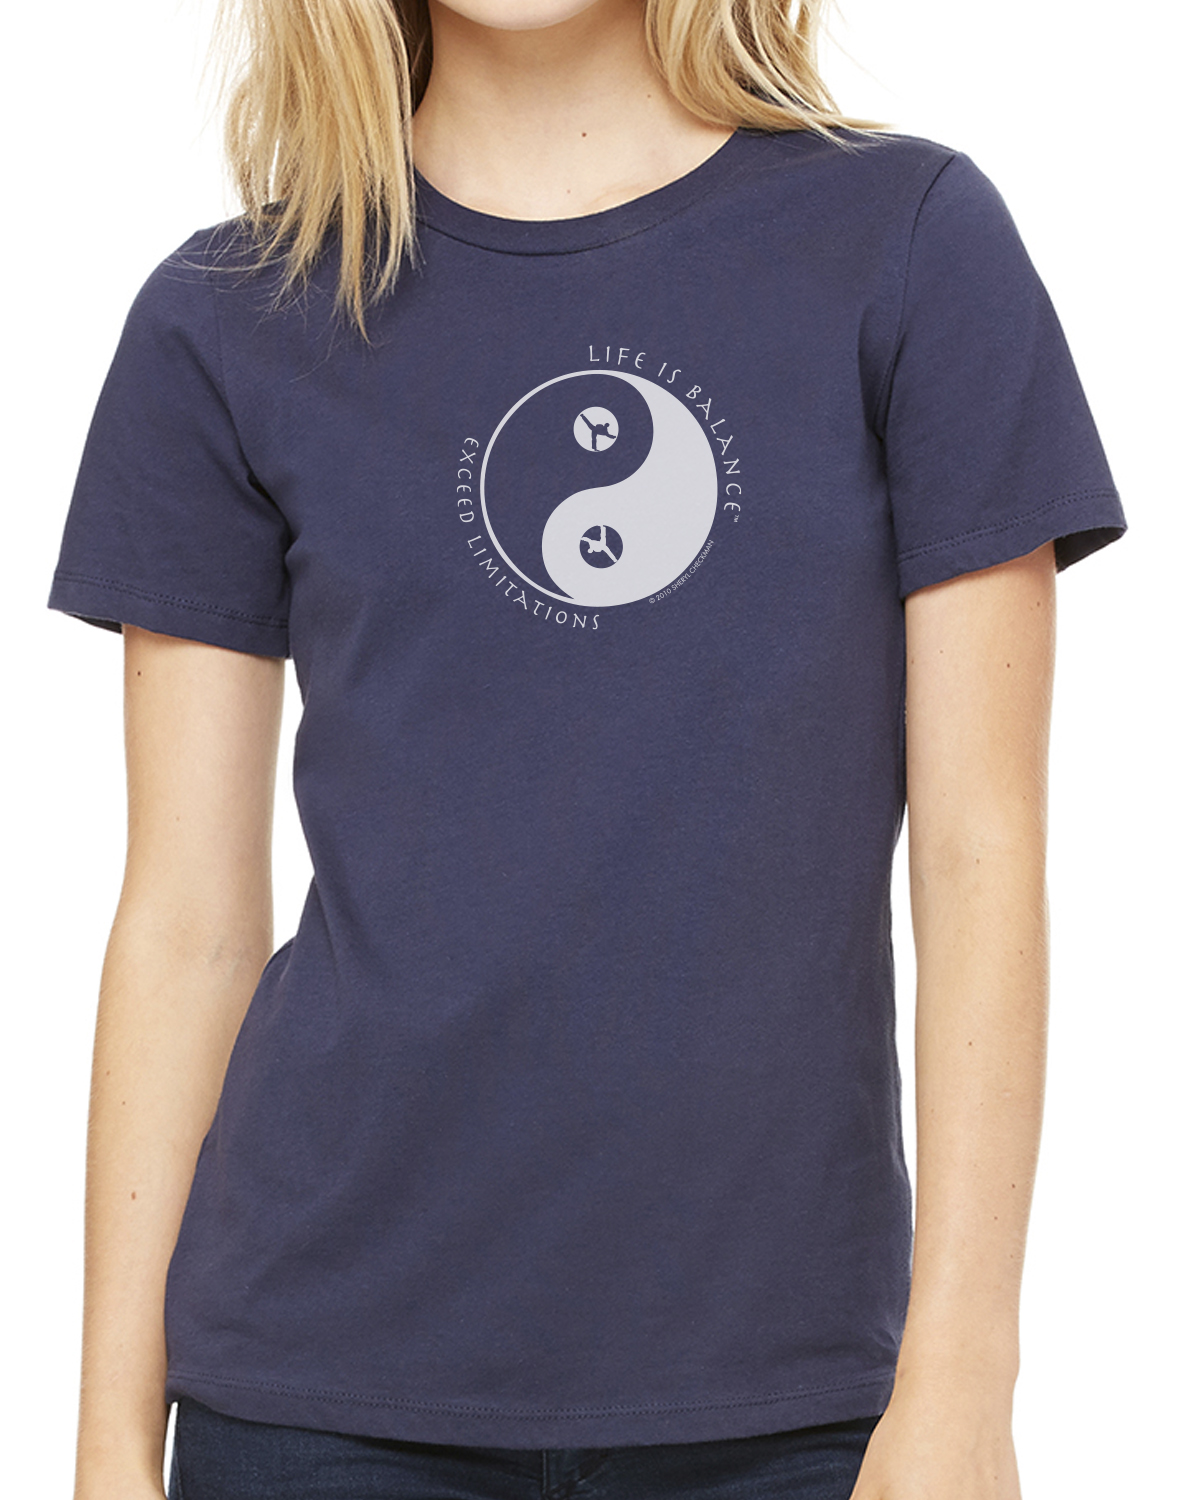 Women's short sleeve martial arts t-shirt (navy)